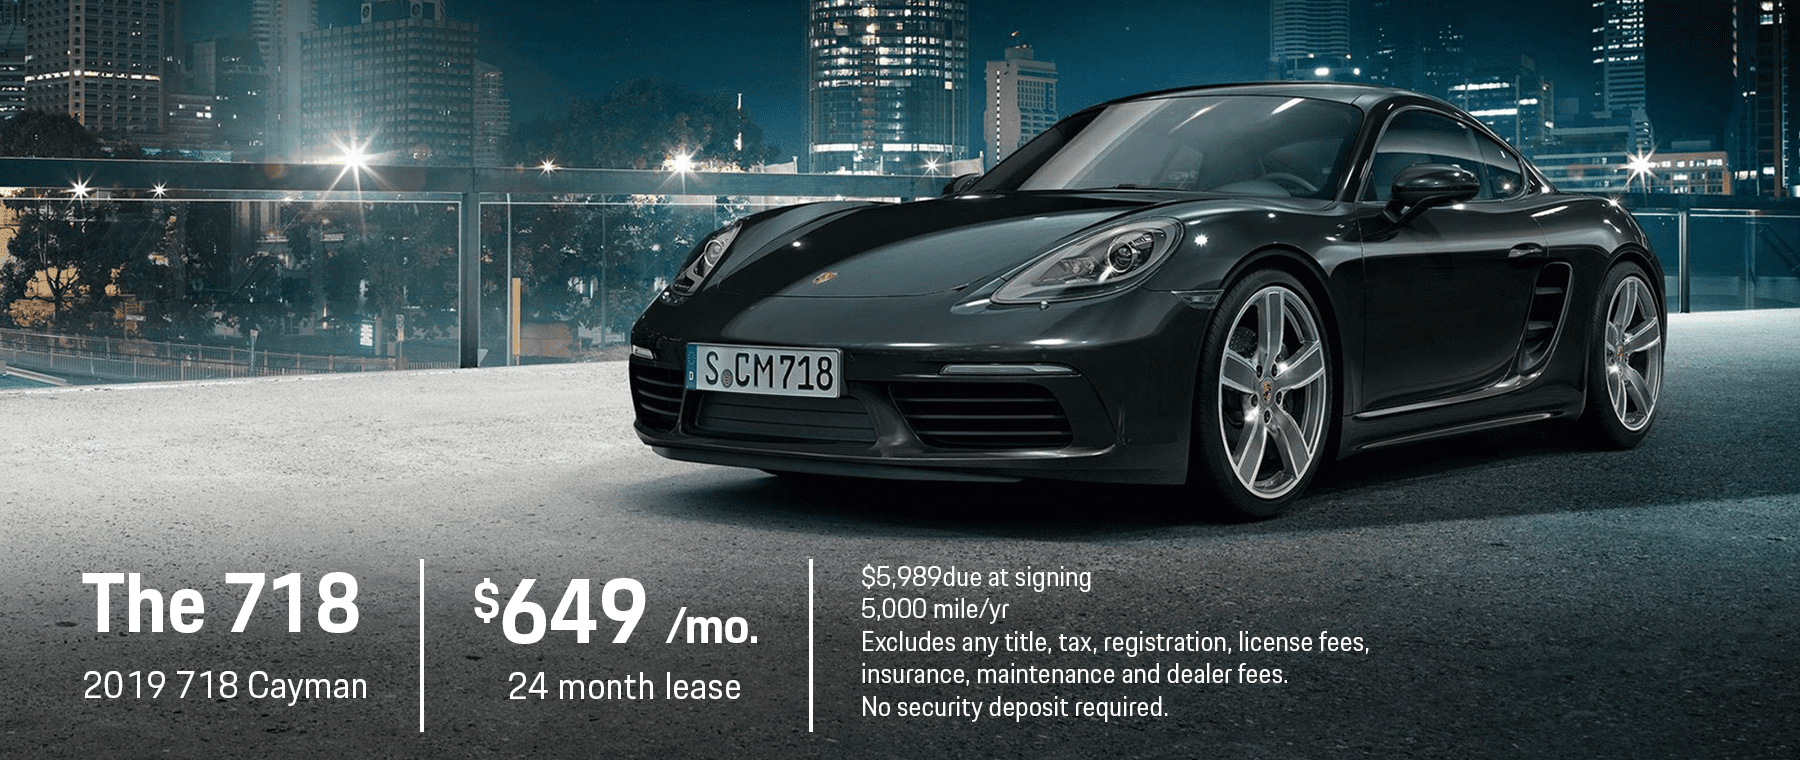 2019 Porsche 718 Cayman lease offer